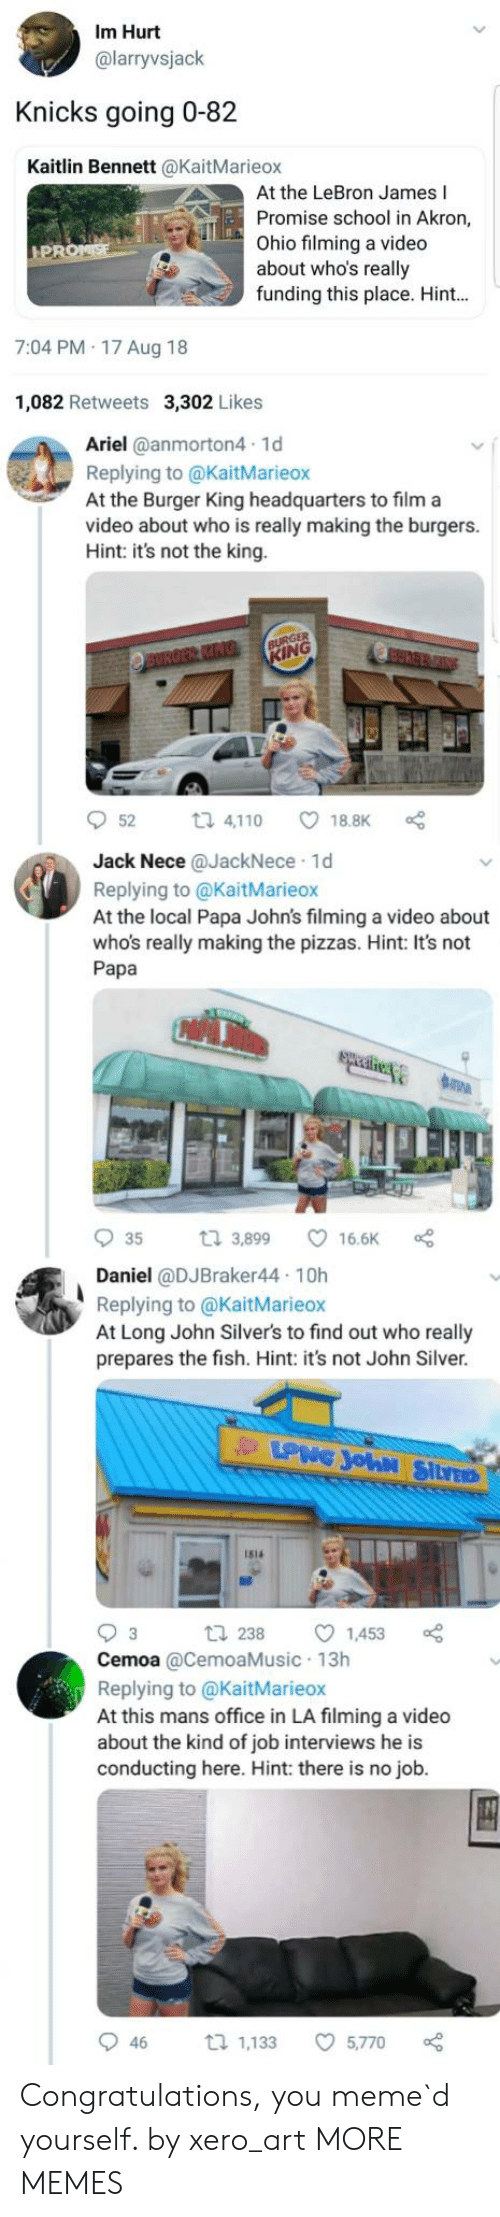 Ariel, Burger King, and Dank: Im Hurt  @larryvsjack  Knicks going 0-82  Kaitlin Bennett @KaitMarieox  At the LeBron James I  Promise school in Akron,  ohio filming a video  about who's really  funding this place. Hint  7:04 PM 17 Aug 18  1,082 Retweets 3,302 Likes  Ariel @anmorton4 1d  Replying to @KaitMarieox  At the Burger King headquarters to film a  video about who is really making the burgers.  Hint: it's not the king.  ING  52  ロ4,1 10  ㅇ18.BK。  Jack Nece @JackNece 1d  Replying to @KaitMarieox  At the local Papa John's filming a video about  who's really making the pizzas. Hint: It's not  Papa  935 3,899 ㅇ 166K oe  Daniel @DJBraker44 10h  Replying to @KaitMarieox  At Long John Silver's to find out who really  prepares the fish. Hint: it's not John Silver  1s14  2381453  Cemoa @CemoaMusic 13h  Replying to @KaitMarieox  At this mans office in LA filming a video  about the kind of job interviews he is  conducting here. Hint: there is no job.  46 1,133 5,770 Congratulations, you meme`d yourself. by xero_art MORE MEMES